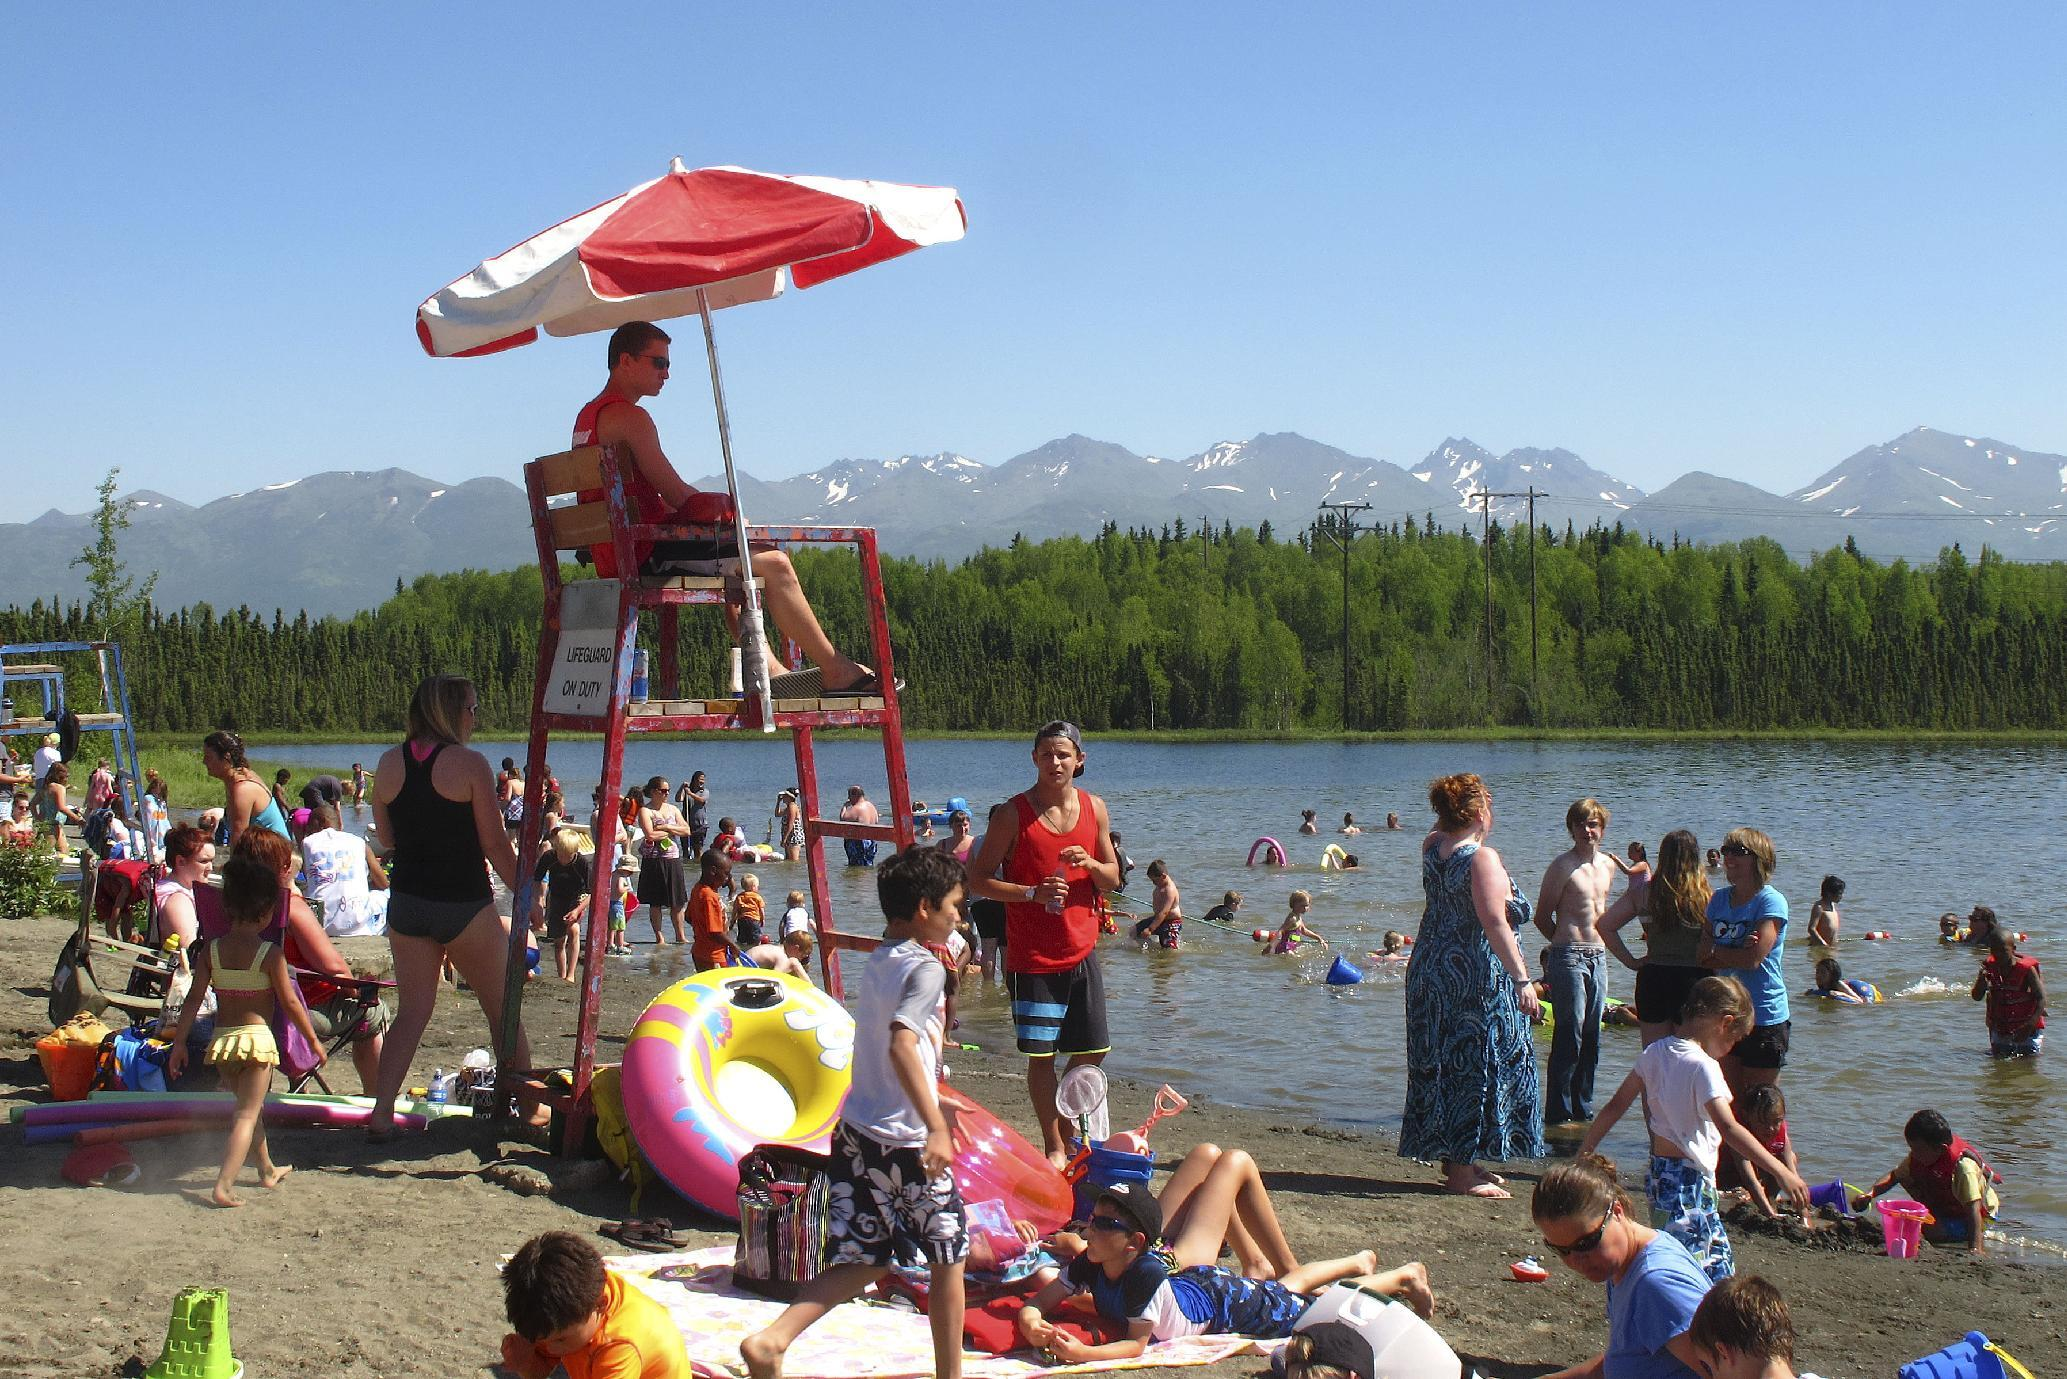 FILE - People swim and sunbathe at Goose Lake in Anchorage, Alaska on Monday, June 17, 2013. Alaska's largest city and other parts of the state are experiencing a long stretch of higher than normal temperatures. The jet stream, the river of air high above Earth that generally dictates the weather, usually rushes rapidly from west to east in a mostly straight direction. But lately it seems to be wobbling and weaving like a drunk driver, wreaking havoc as it goes. The most recent example is mid-June where some towns in Alaska hit record highs. (AP Photo/Rachel D'Oro)